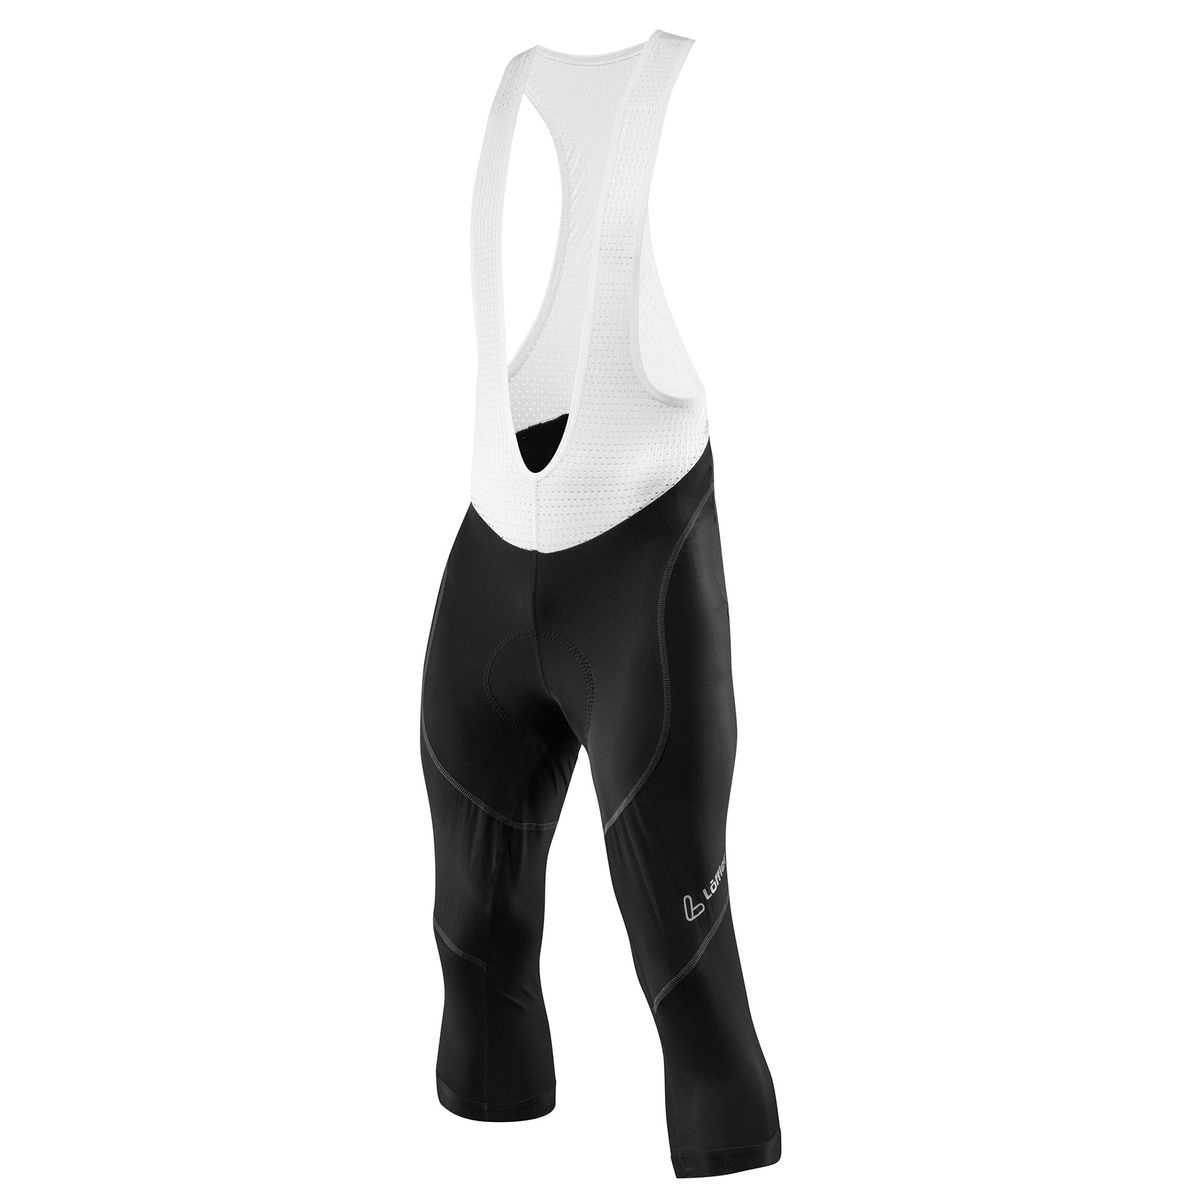 BIKE 3/4 BIB PANTS WS SOFTSHELL LIGHT (MS) bib tights